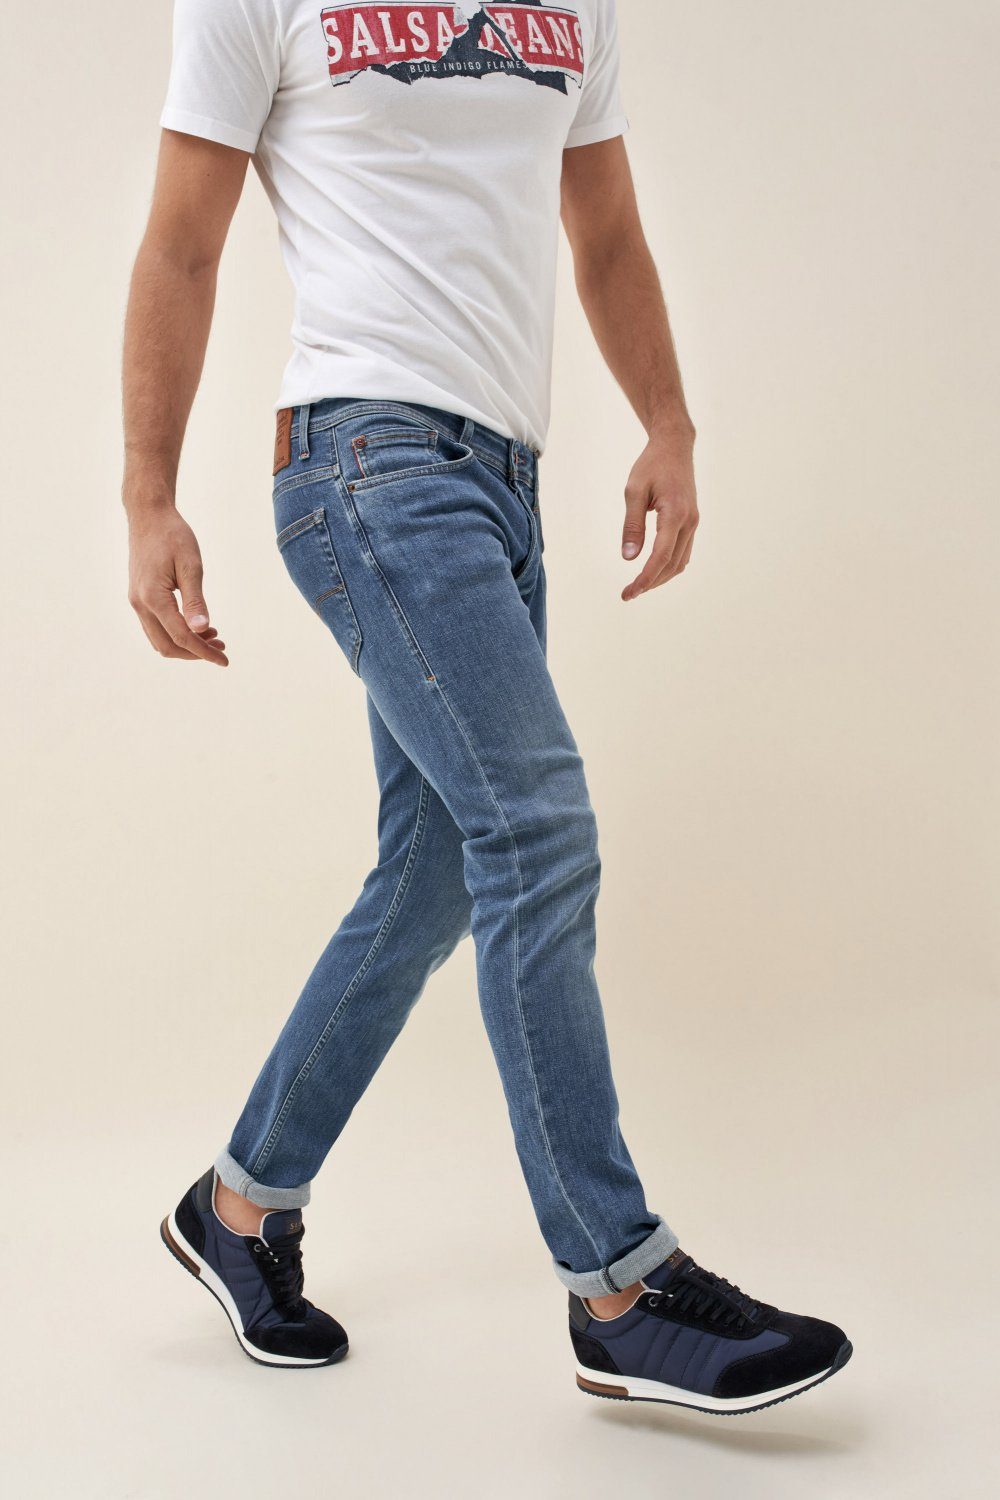 Jeans Lima tapered rip proof - Salsa